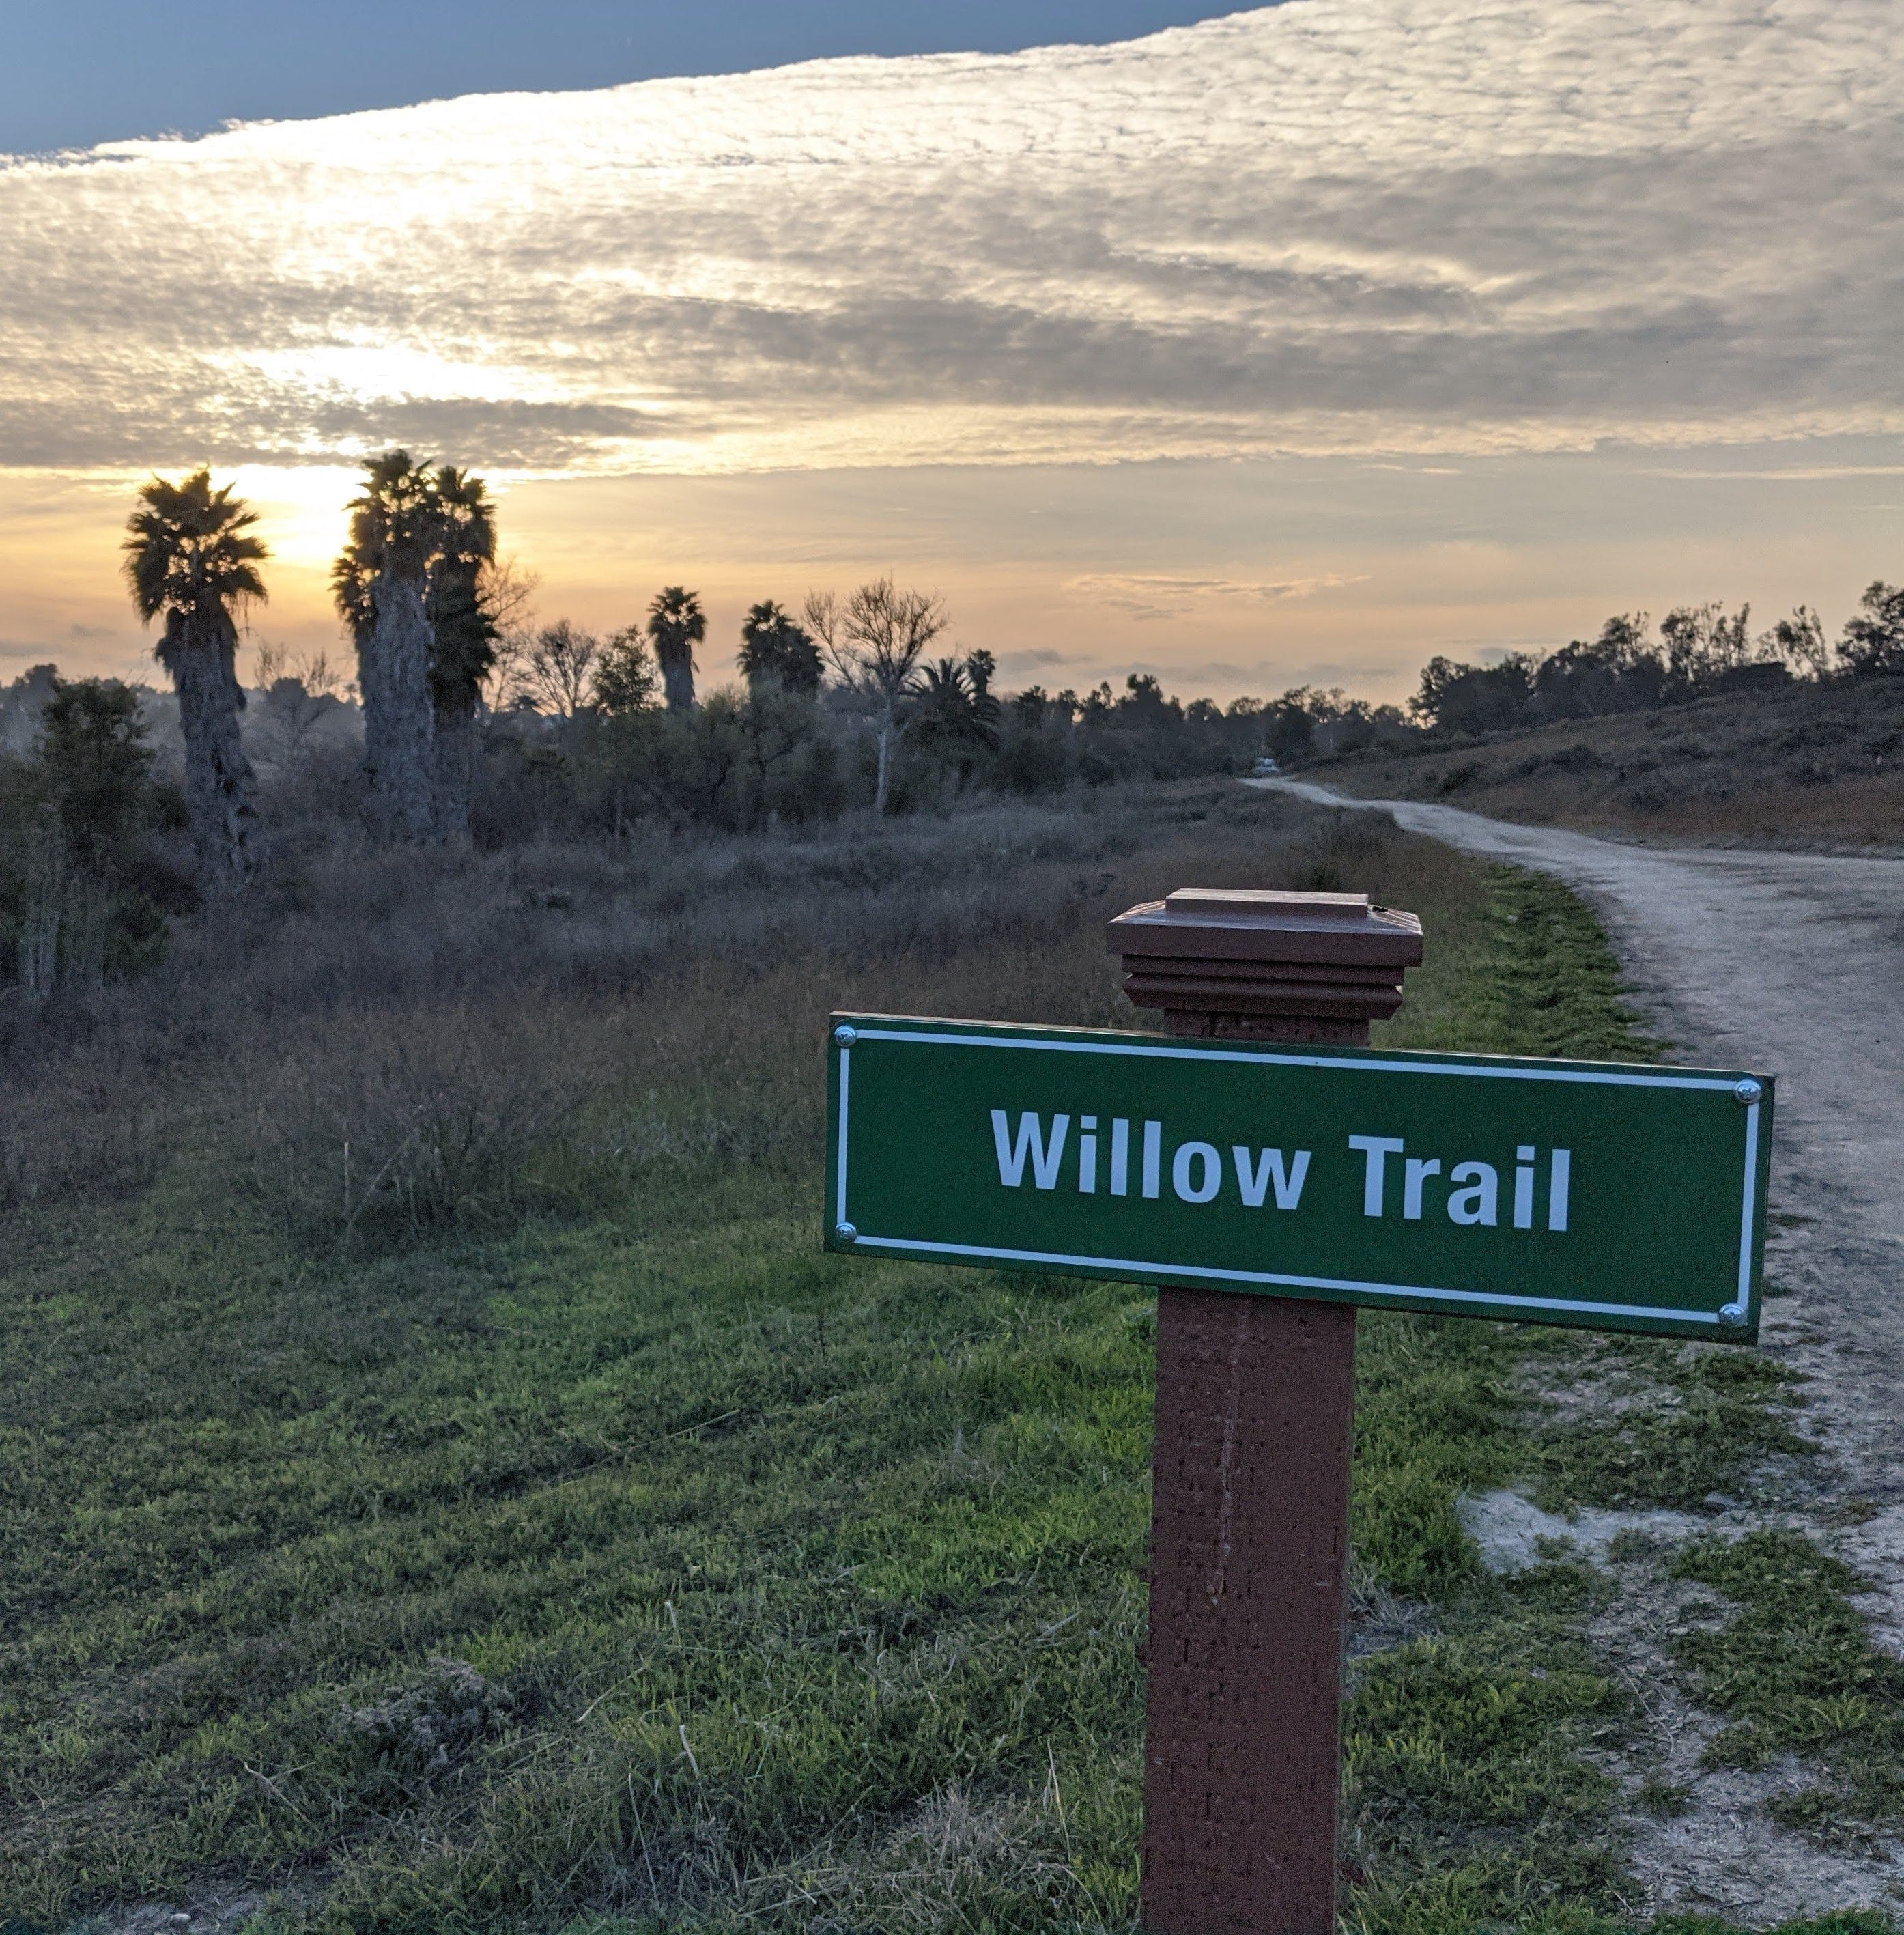 Willow Trail in Guajome County Park San Diego